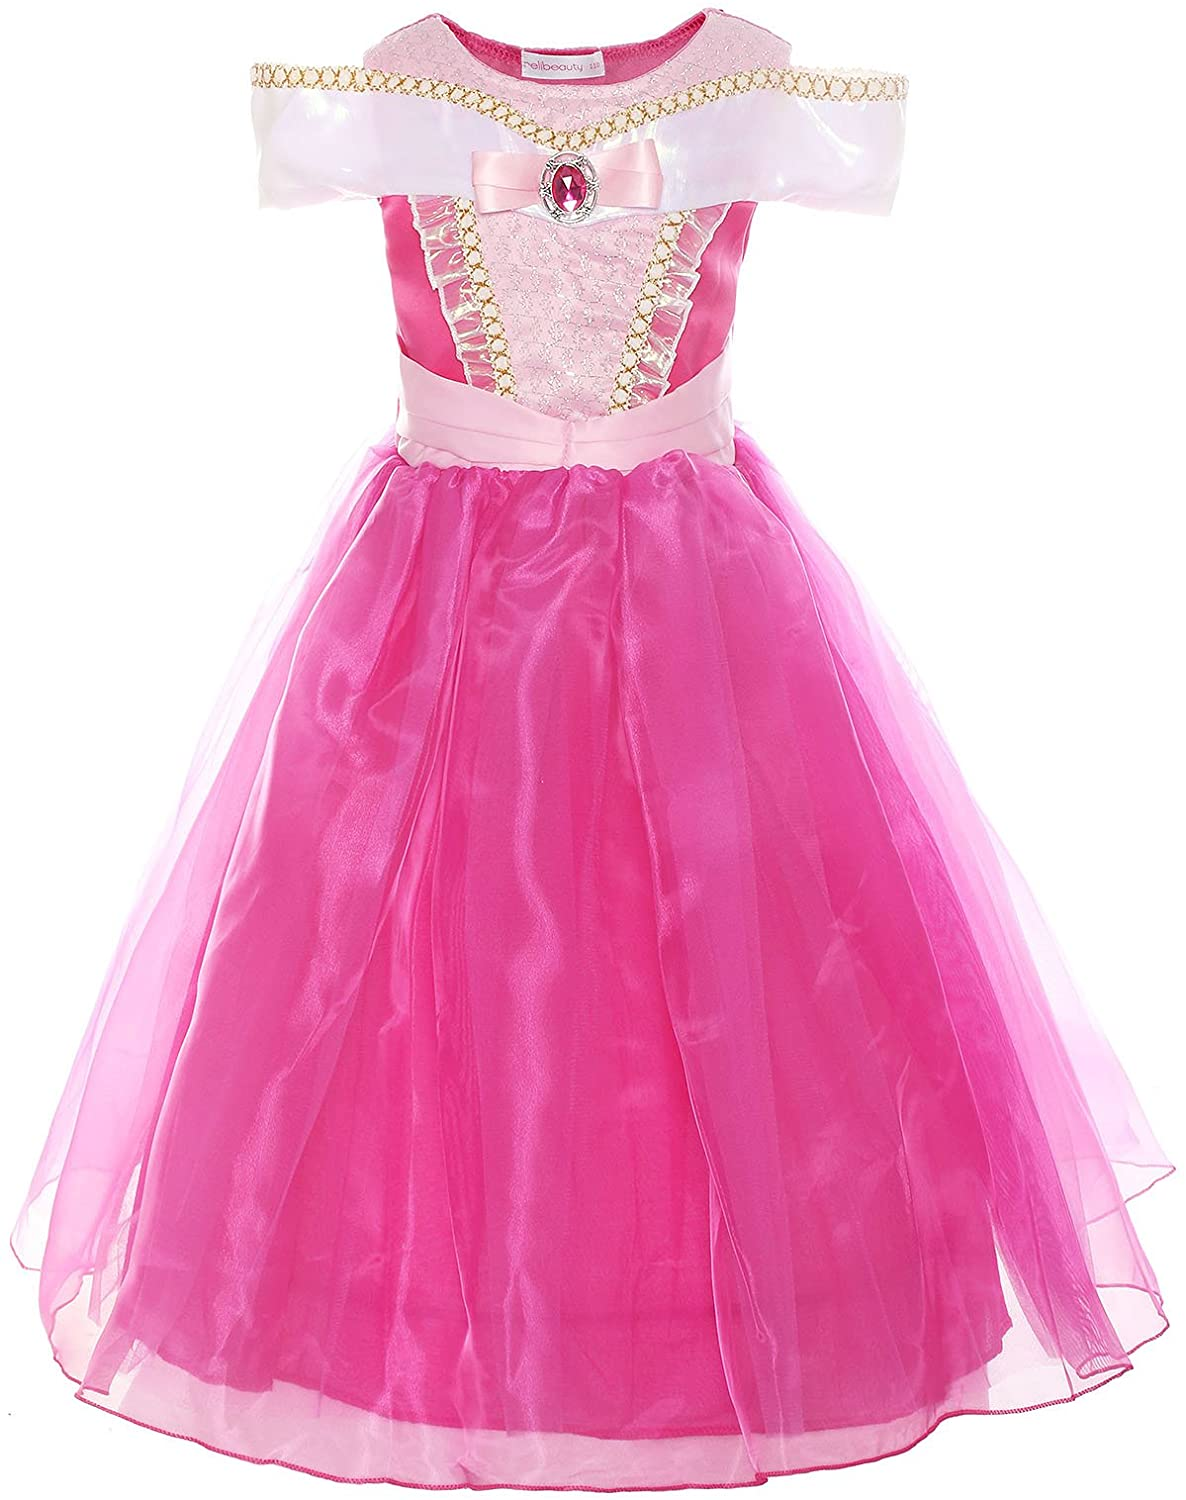 ReliBeauty Girls Drop Shoulder Princess Costume Dress up, Ankle-Length, Hot Pink, 6-6X/130